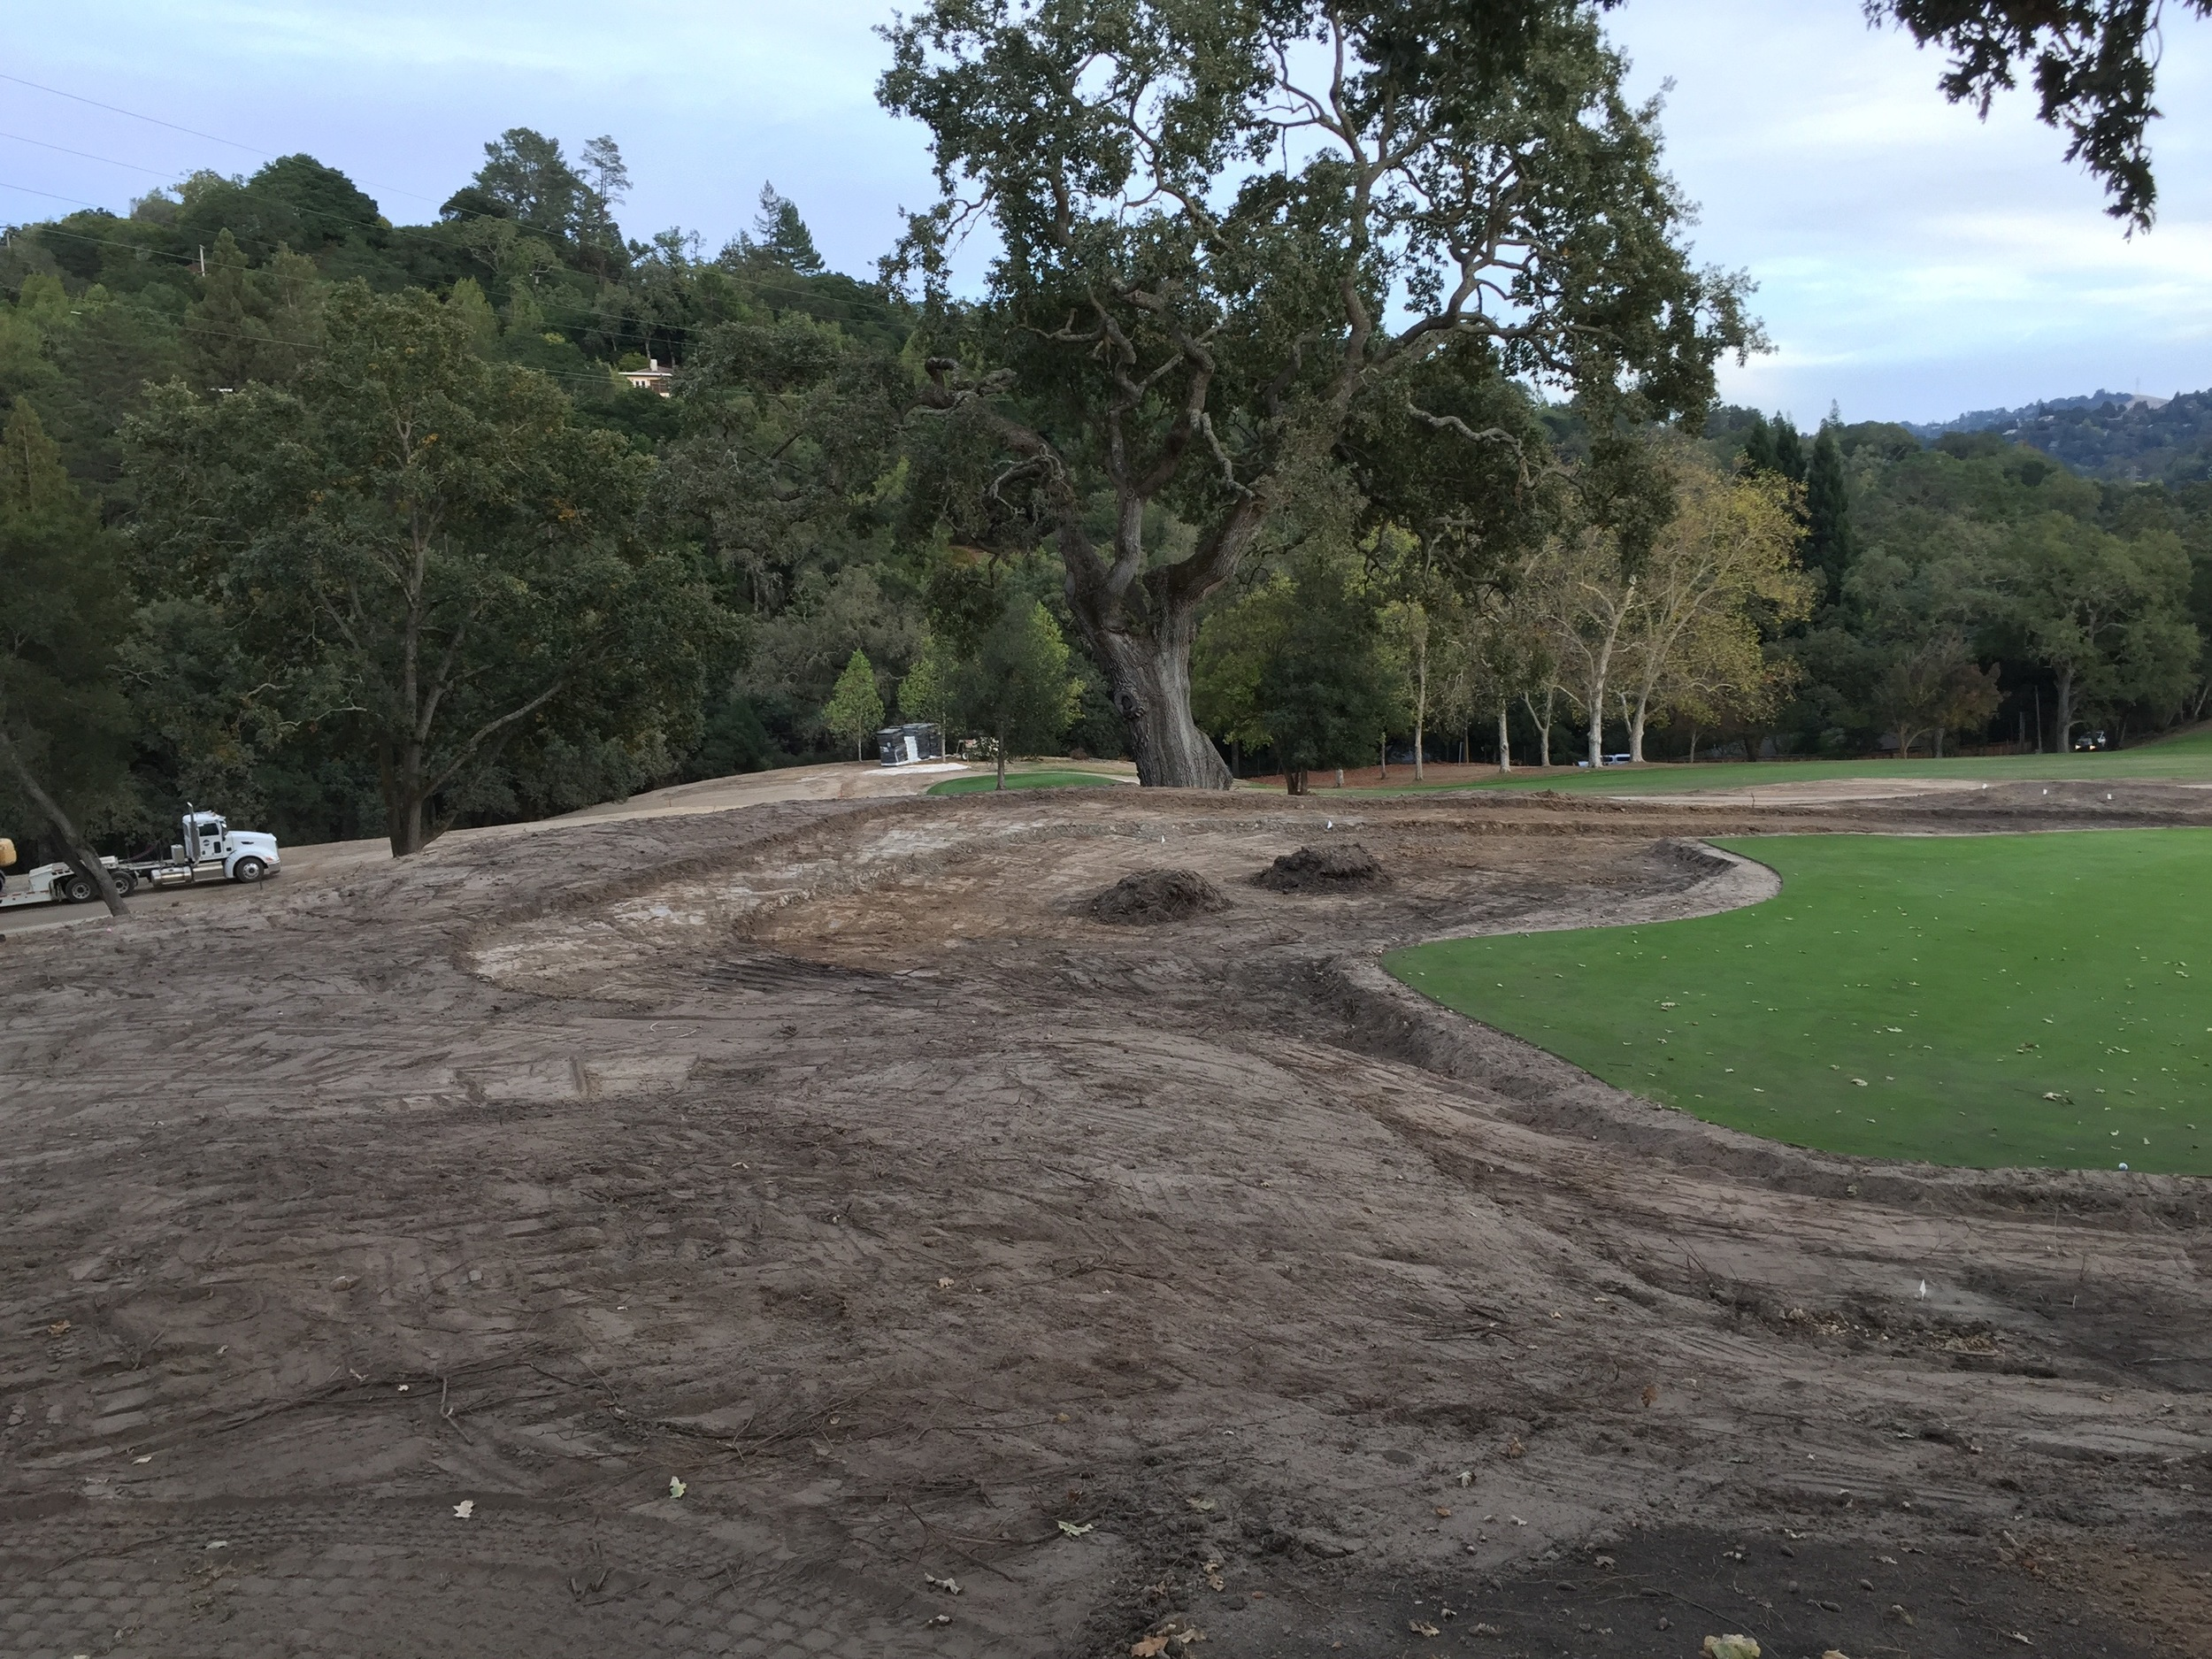 hochstein-design-orinda-cc-hole-2-construction-3.jpg